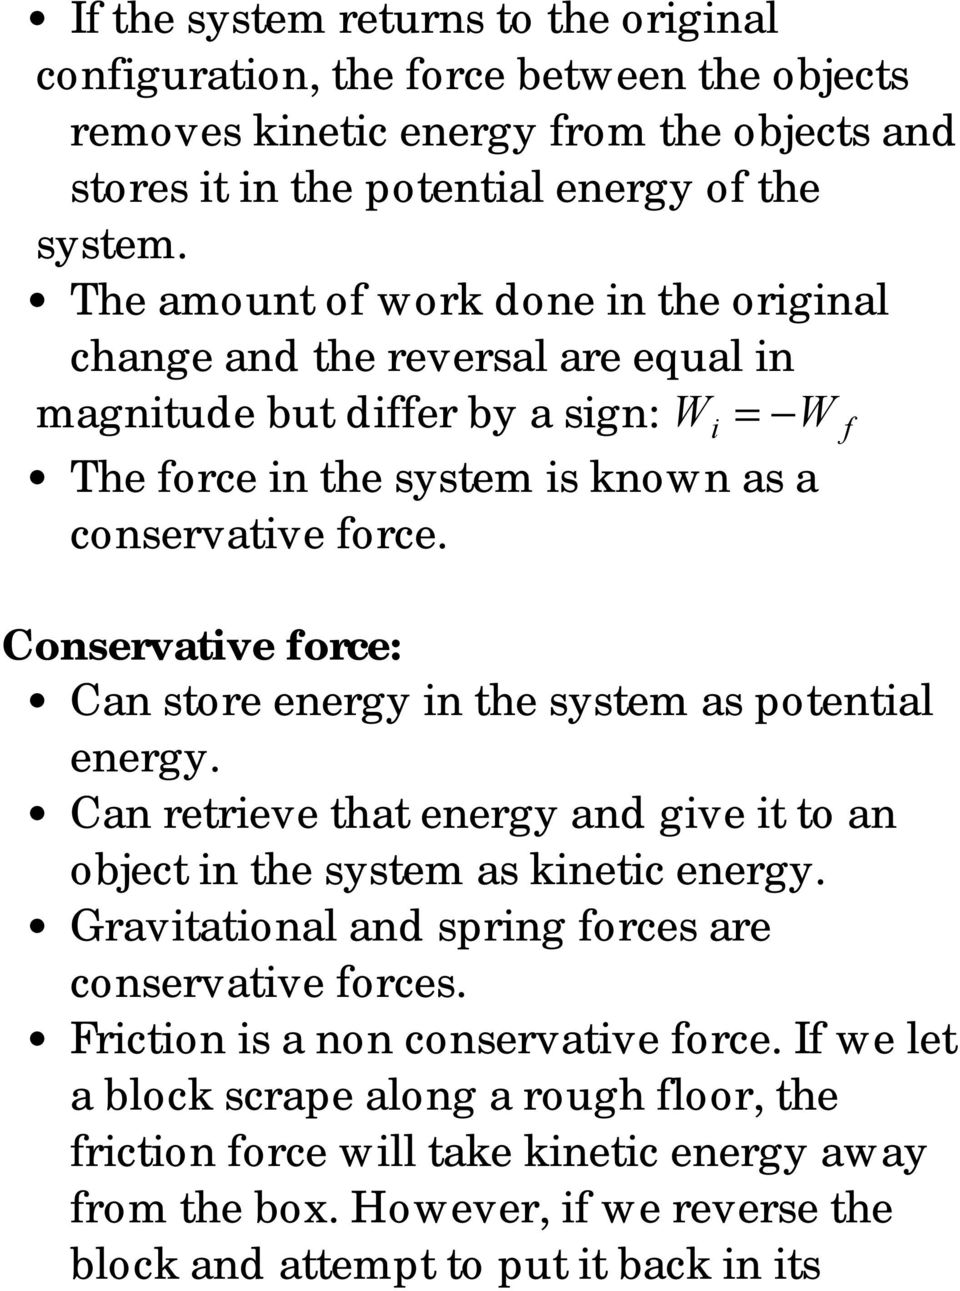 Conservative force: Can store energy in the system as potential energy. Can retrieve that energy and give it to an object in the system as kinetic energy.